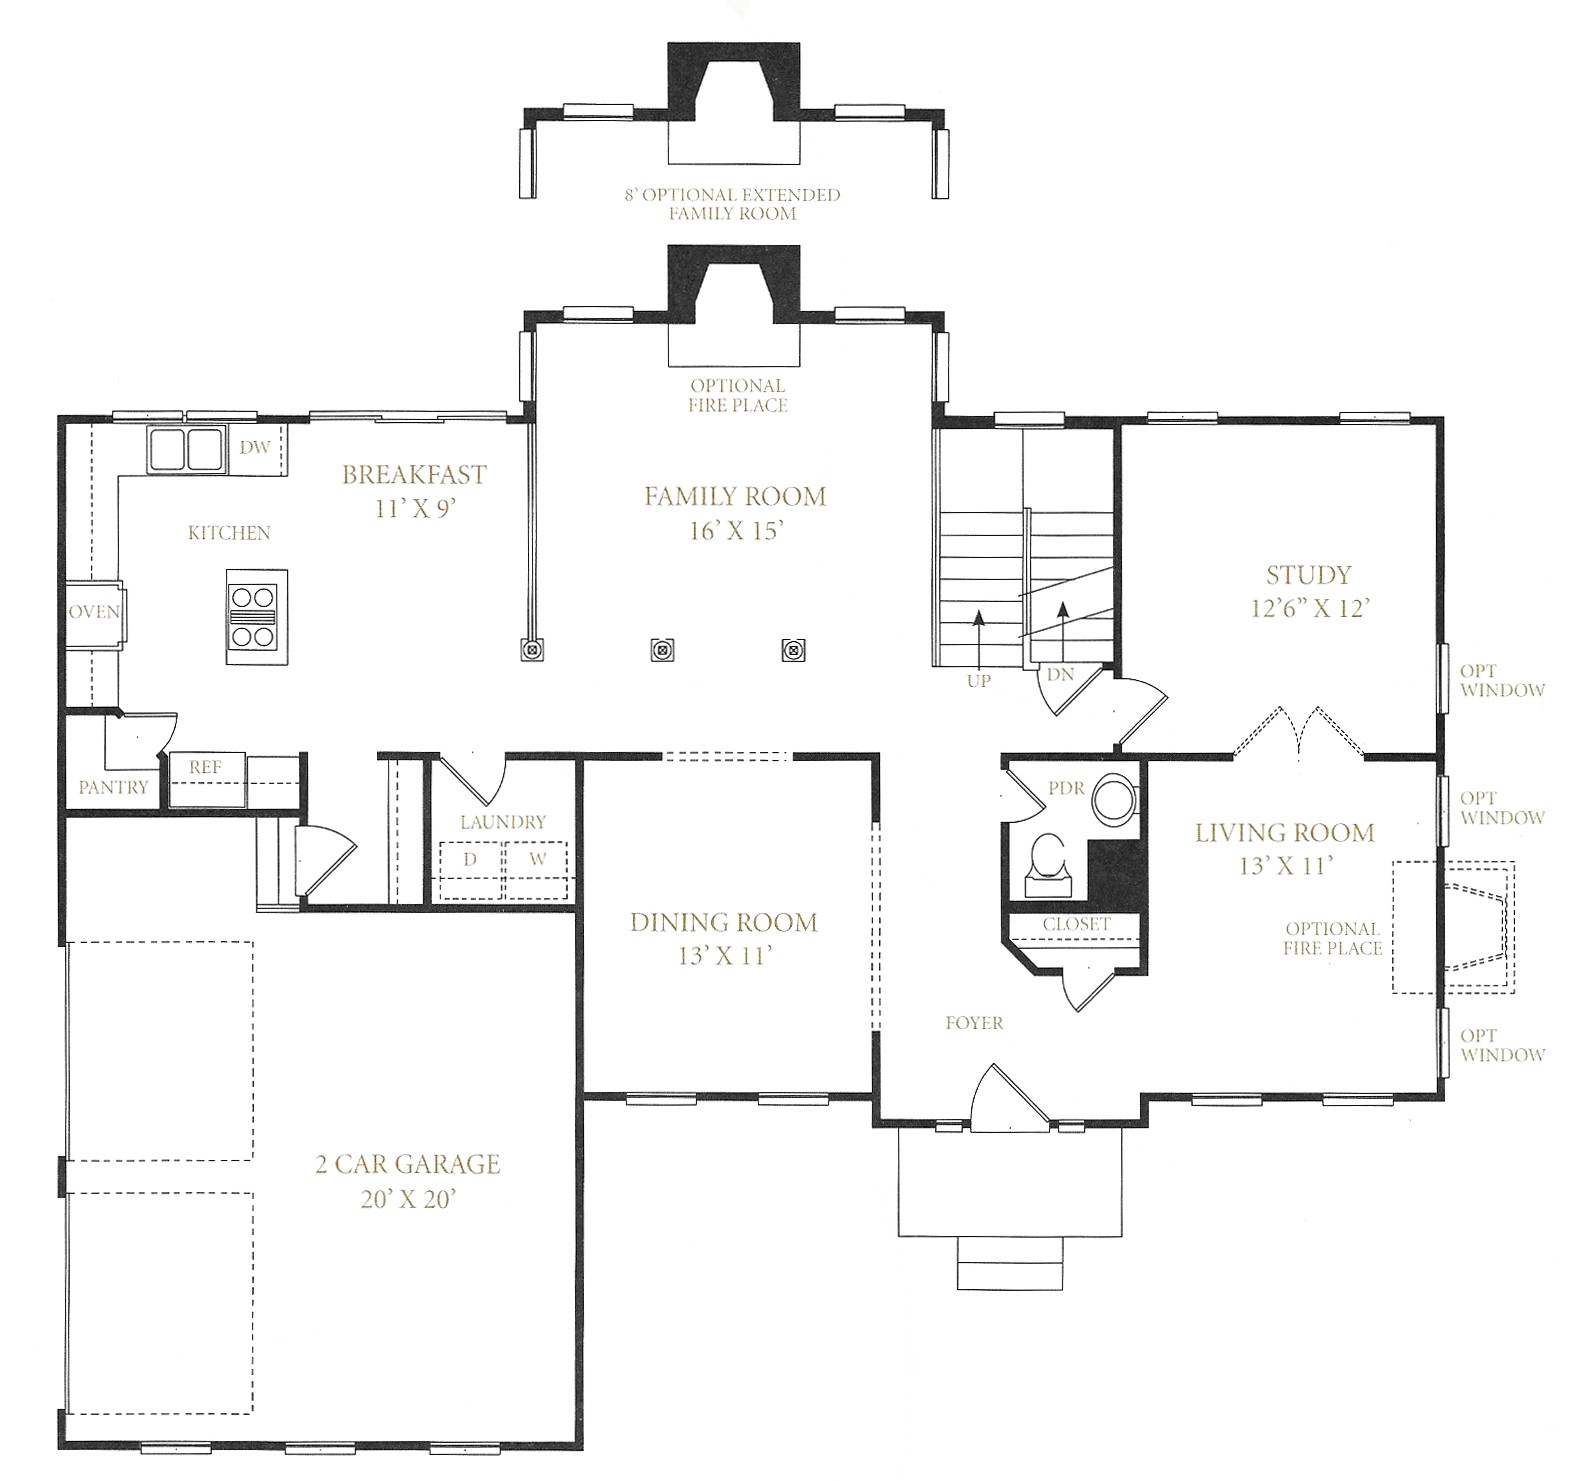 Royal Oaks Homes Floor Plans - New Market, Maryland